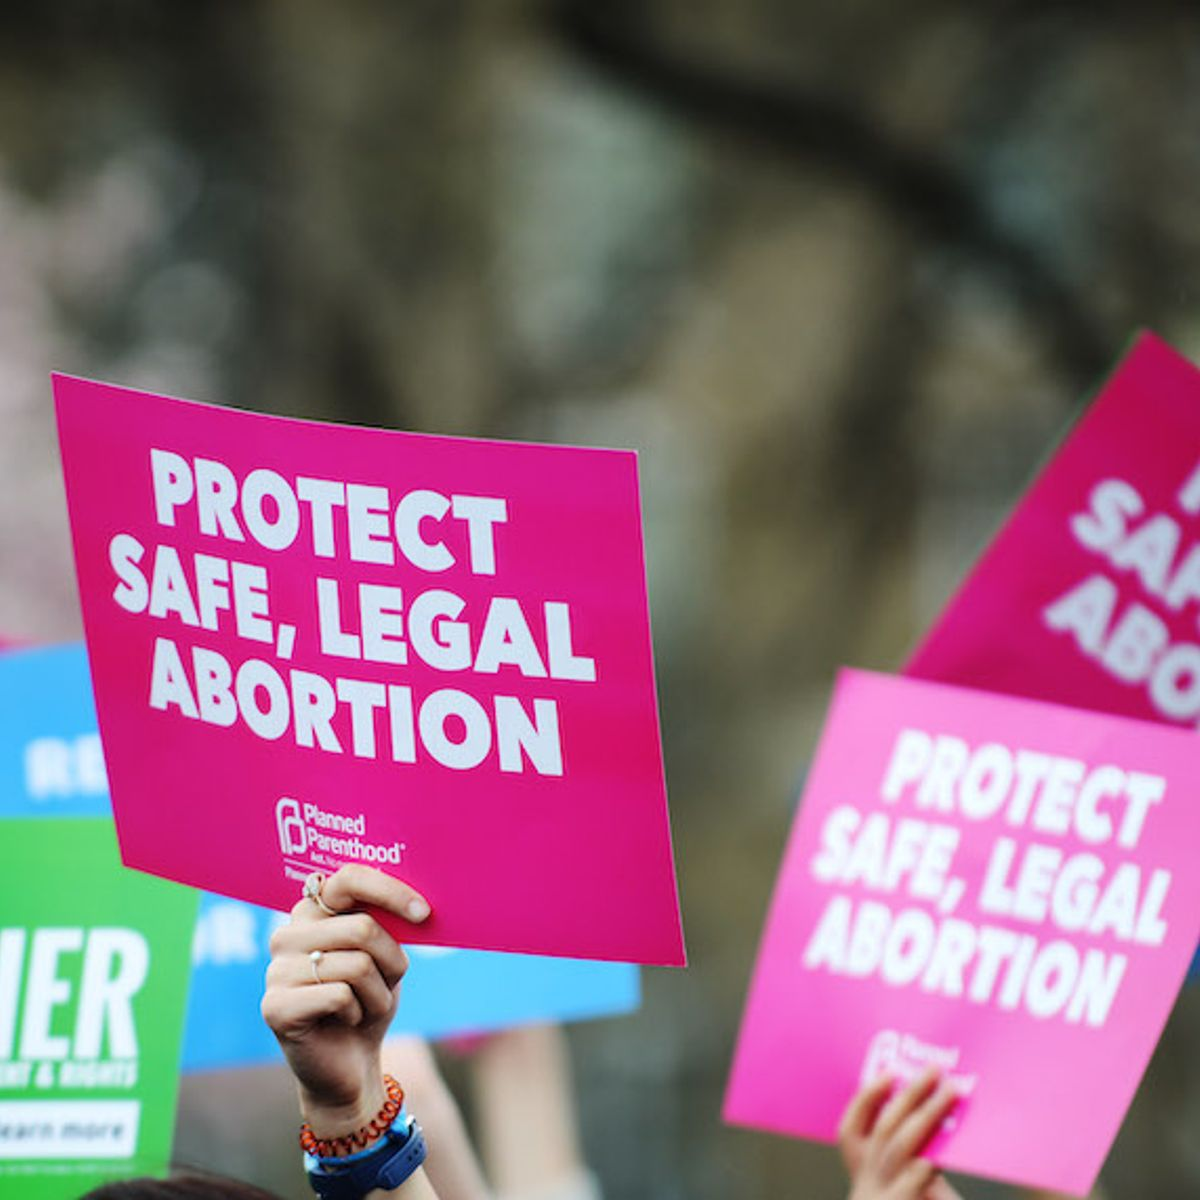 Outrage as GOP lawmakers push Trump to intensify attacks on women with broadened global gag rule